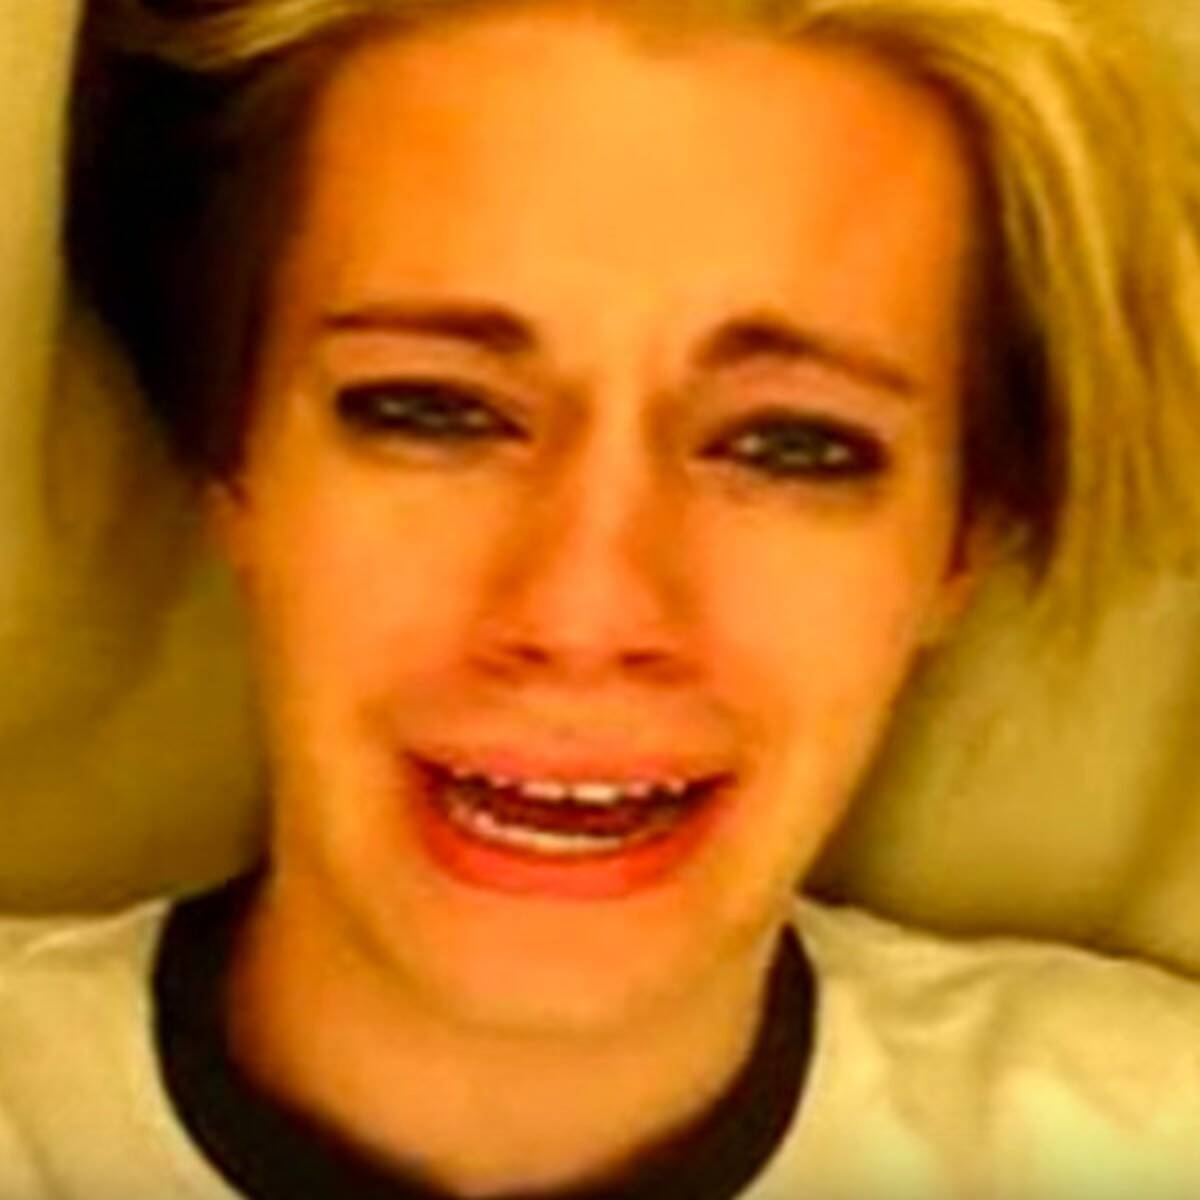 chris-crocker-revisits-his-leave-britney-alone-video-after-it-trends-due-to-framing-britney-spears